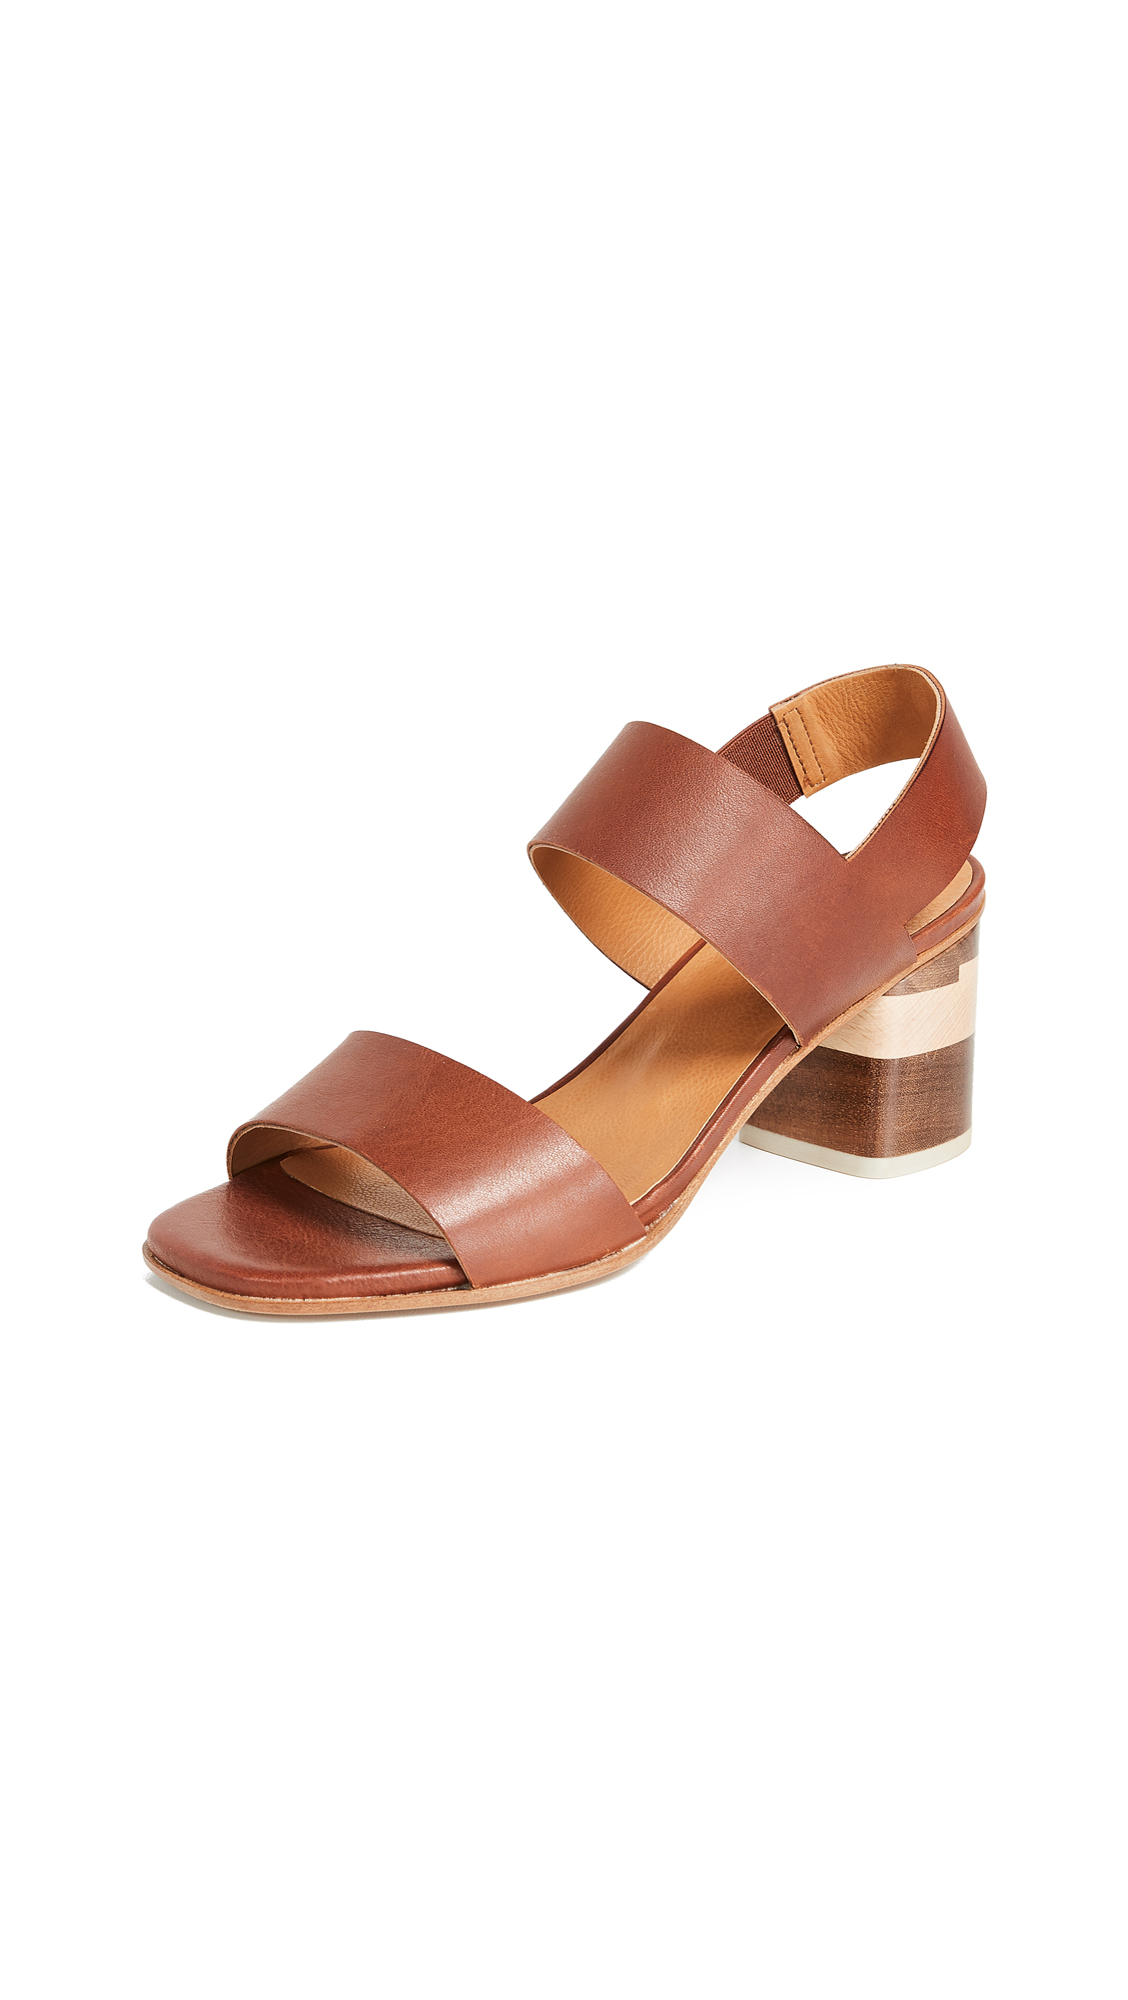 Coclico Shoes Bask Tri Color Sandals - Tan